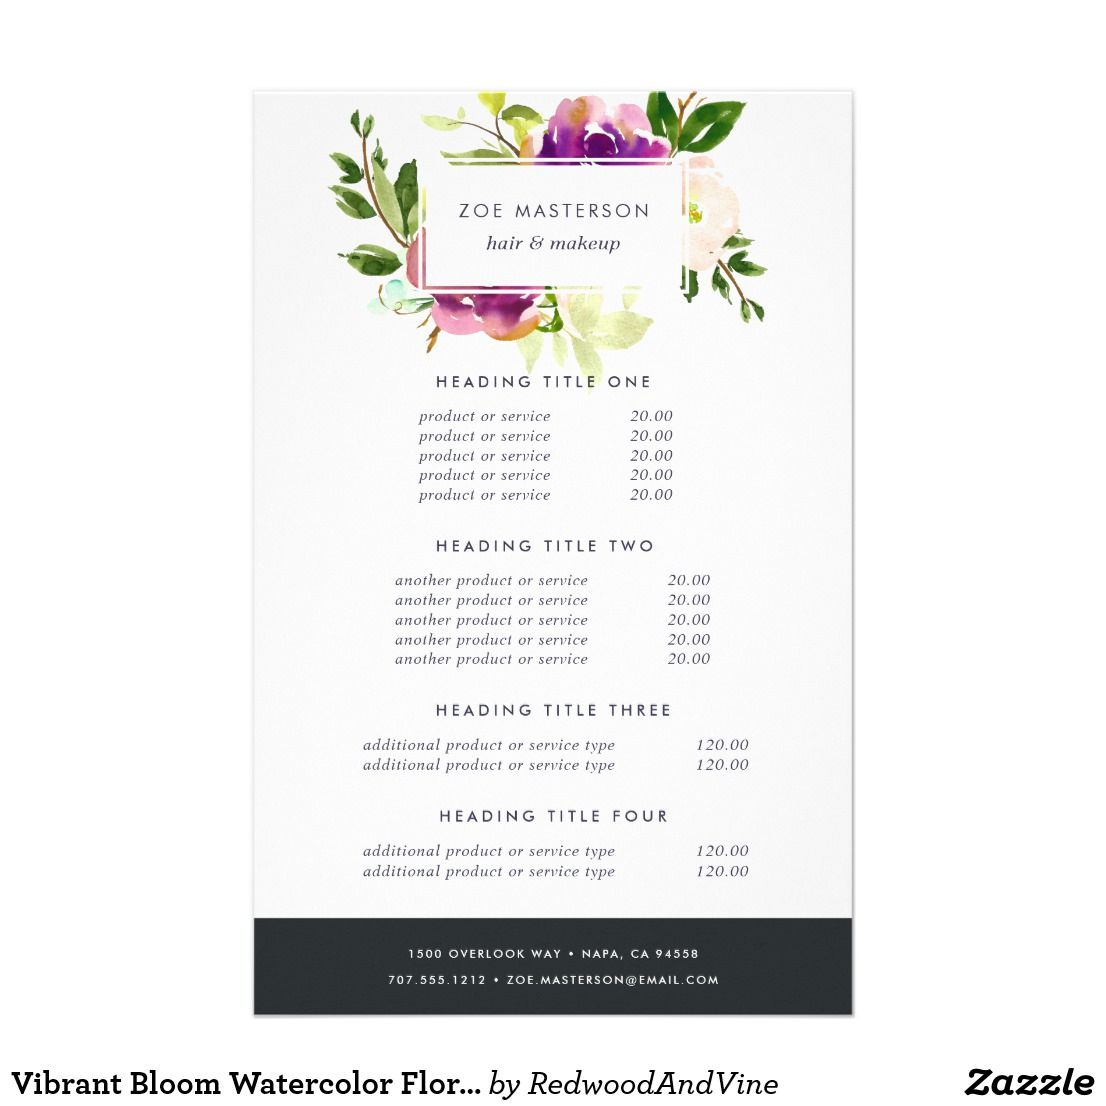 Vibrant Bloom Watercolor Floral Pricing Amp Services Flyer